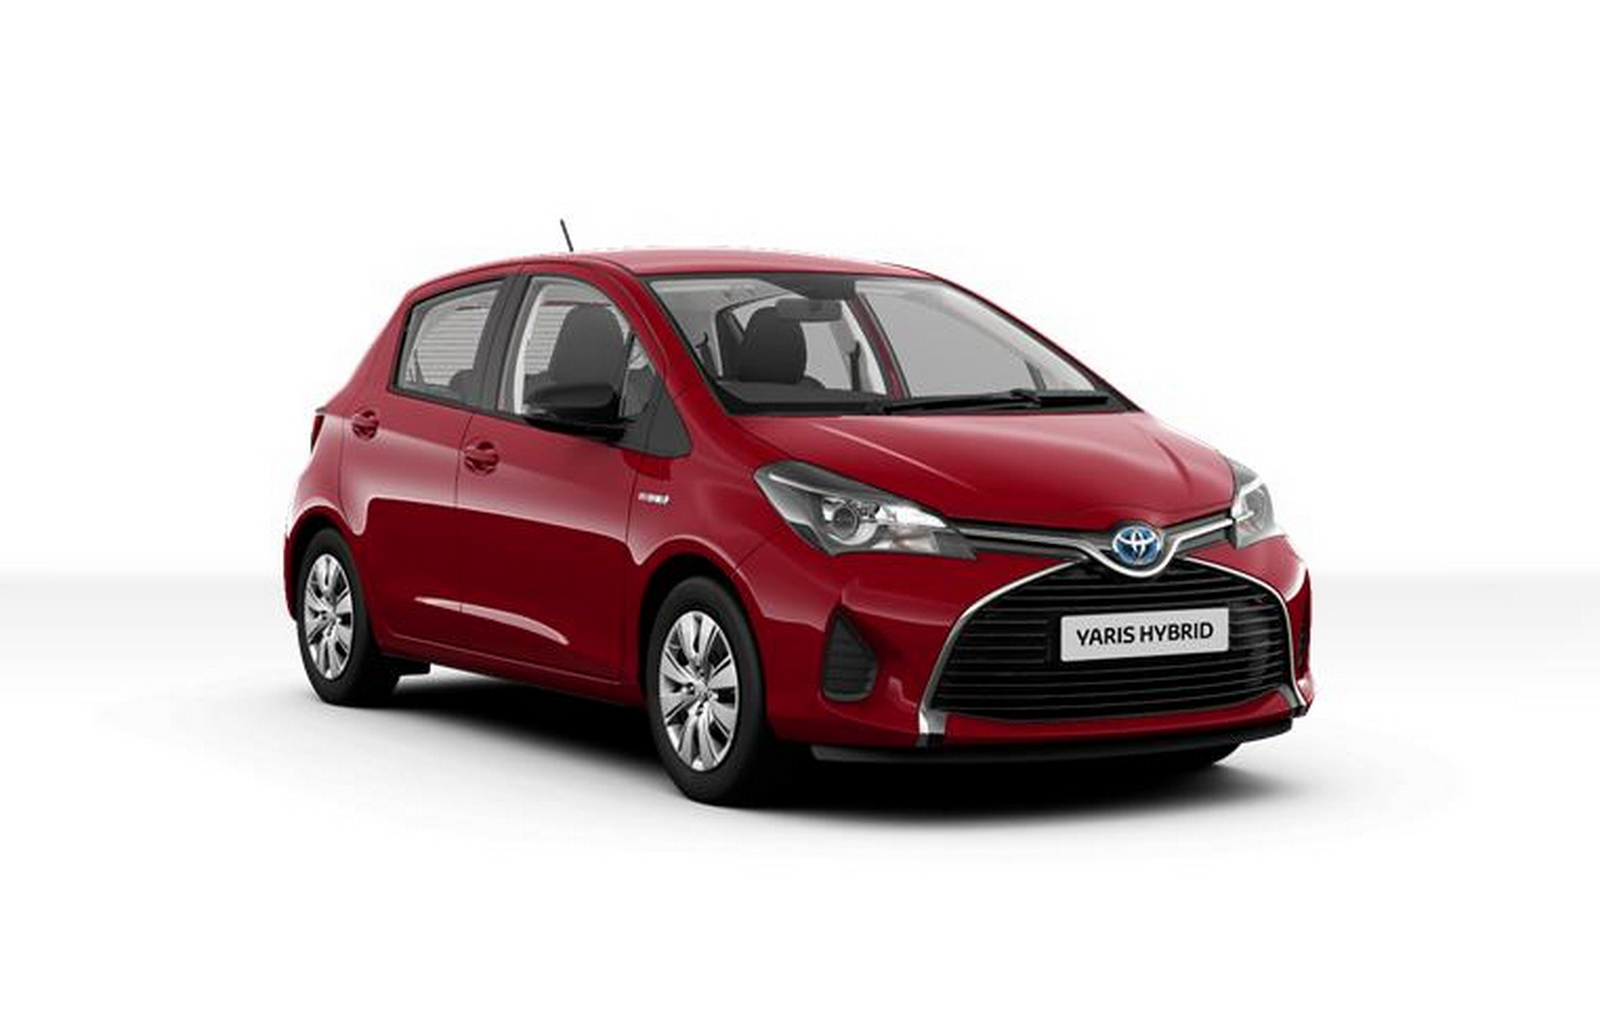 toyota yaris hybrid gains active and sport versions in the uk carscoops. Black Bedroom Furniture Sets. Home Design Ideas